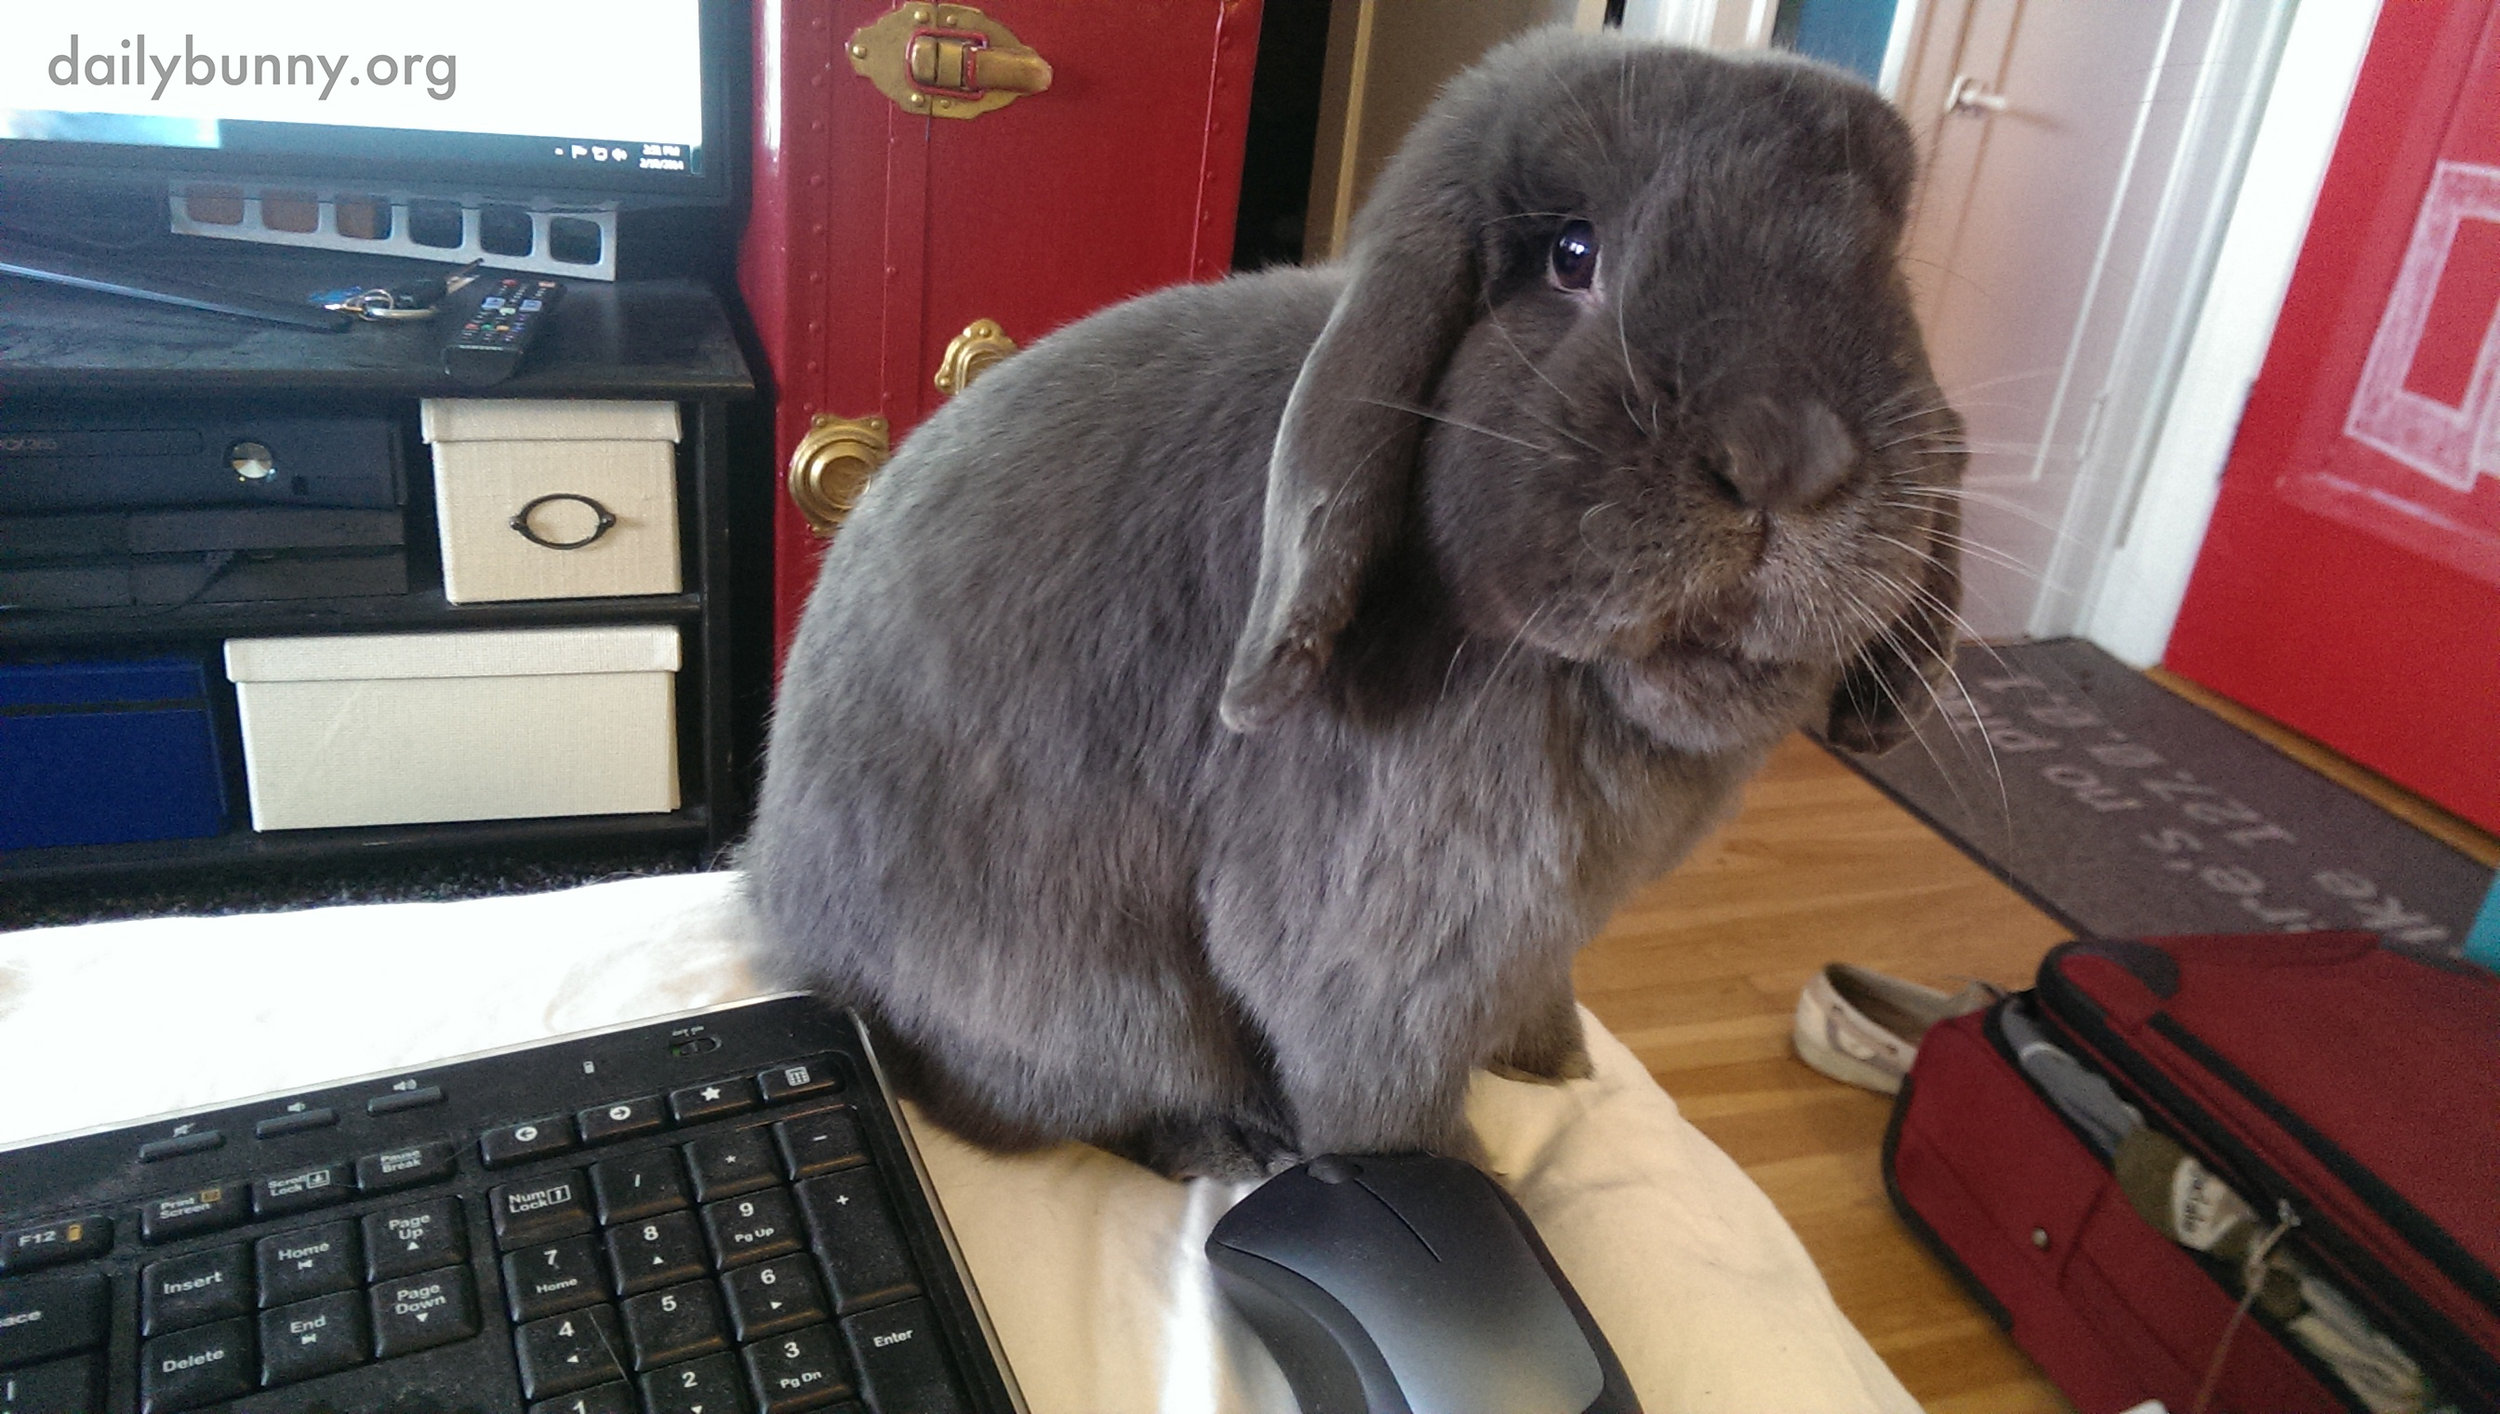 Bunny Thinks Working from Home Should Involve Frequent Treat Breaks